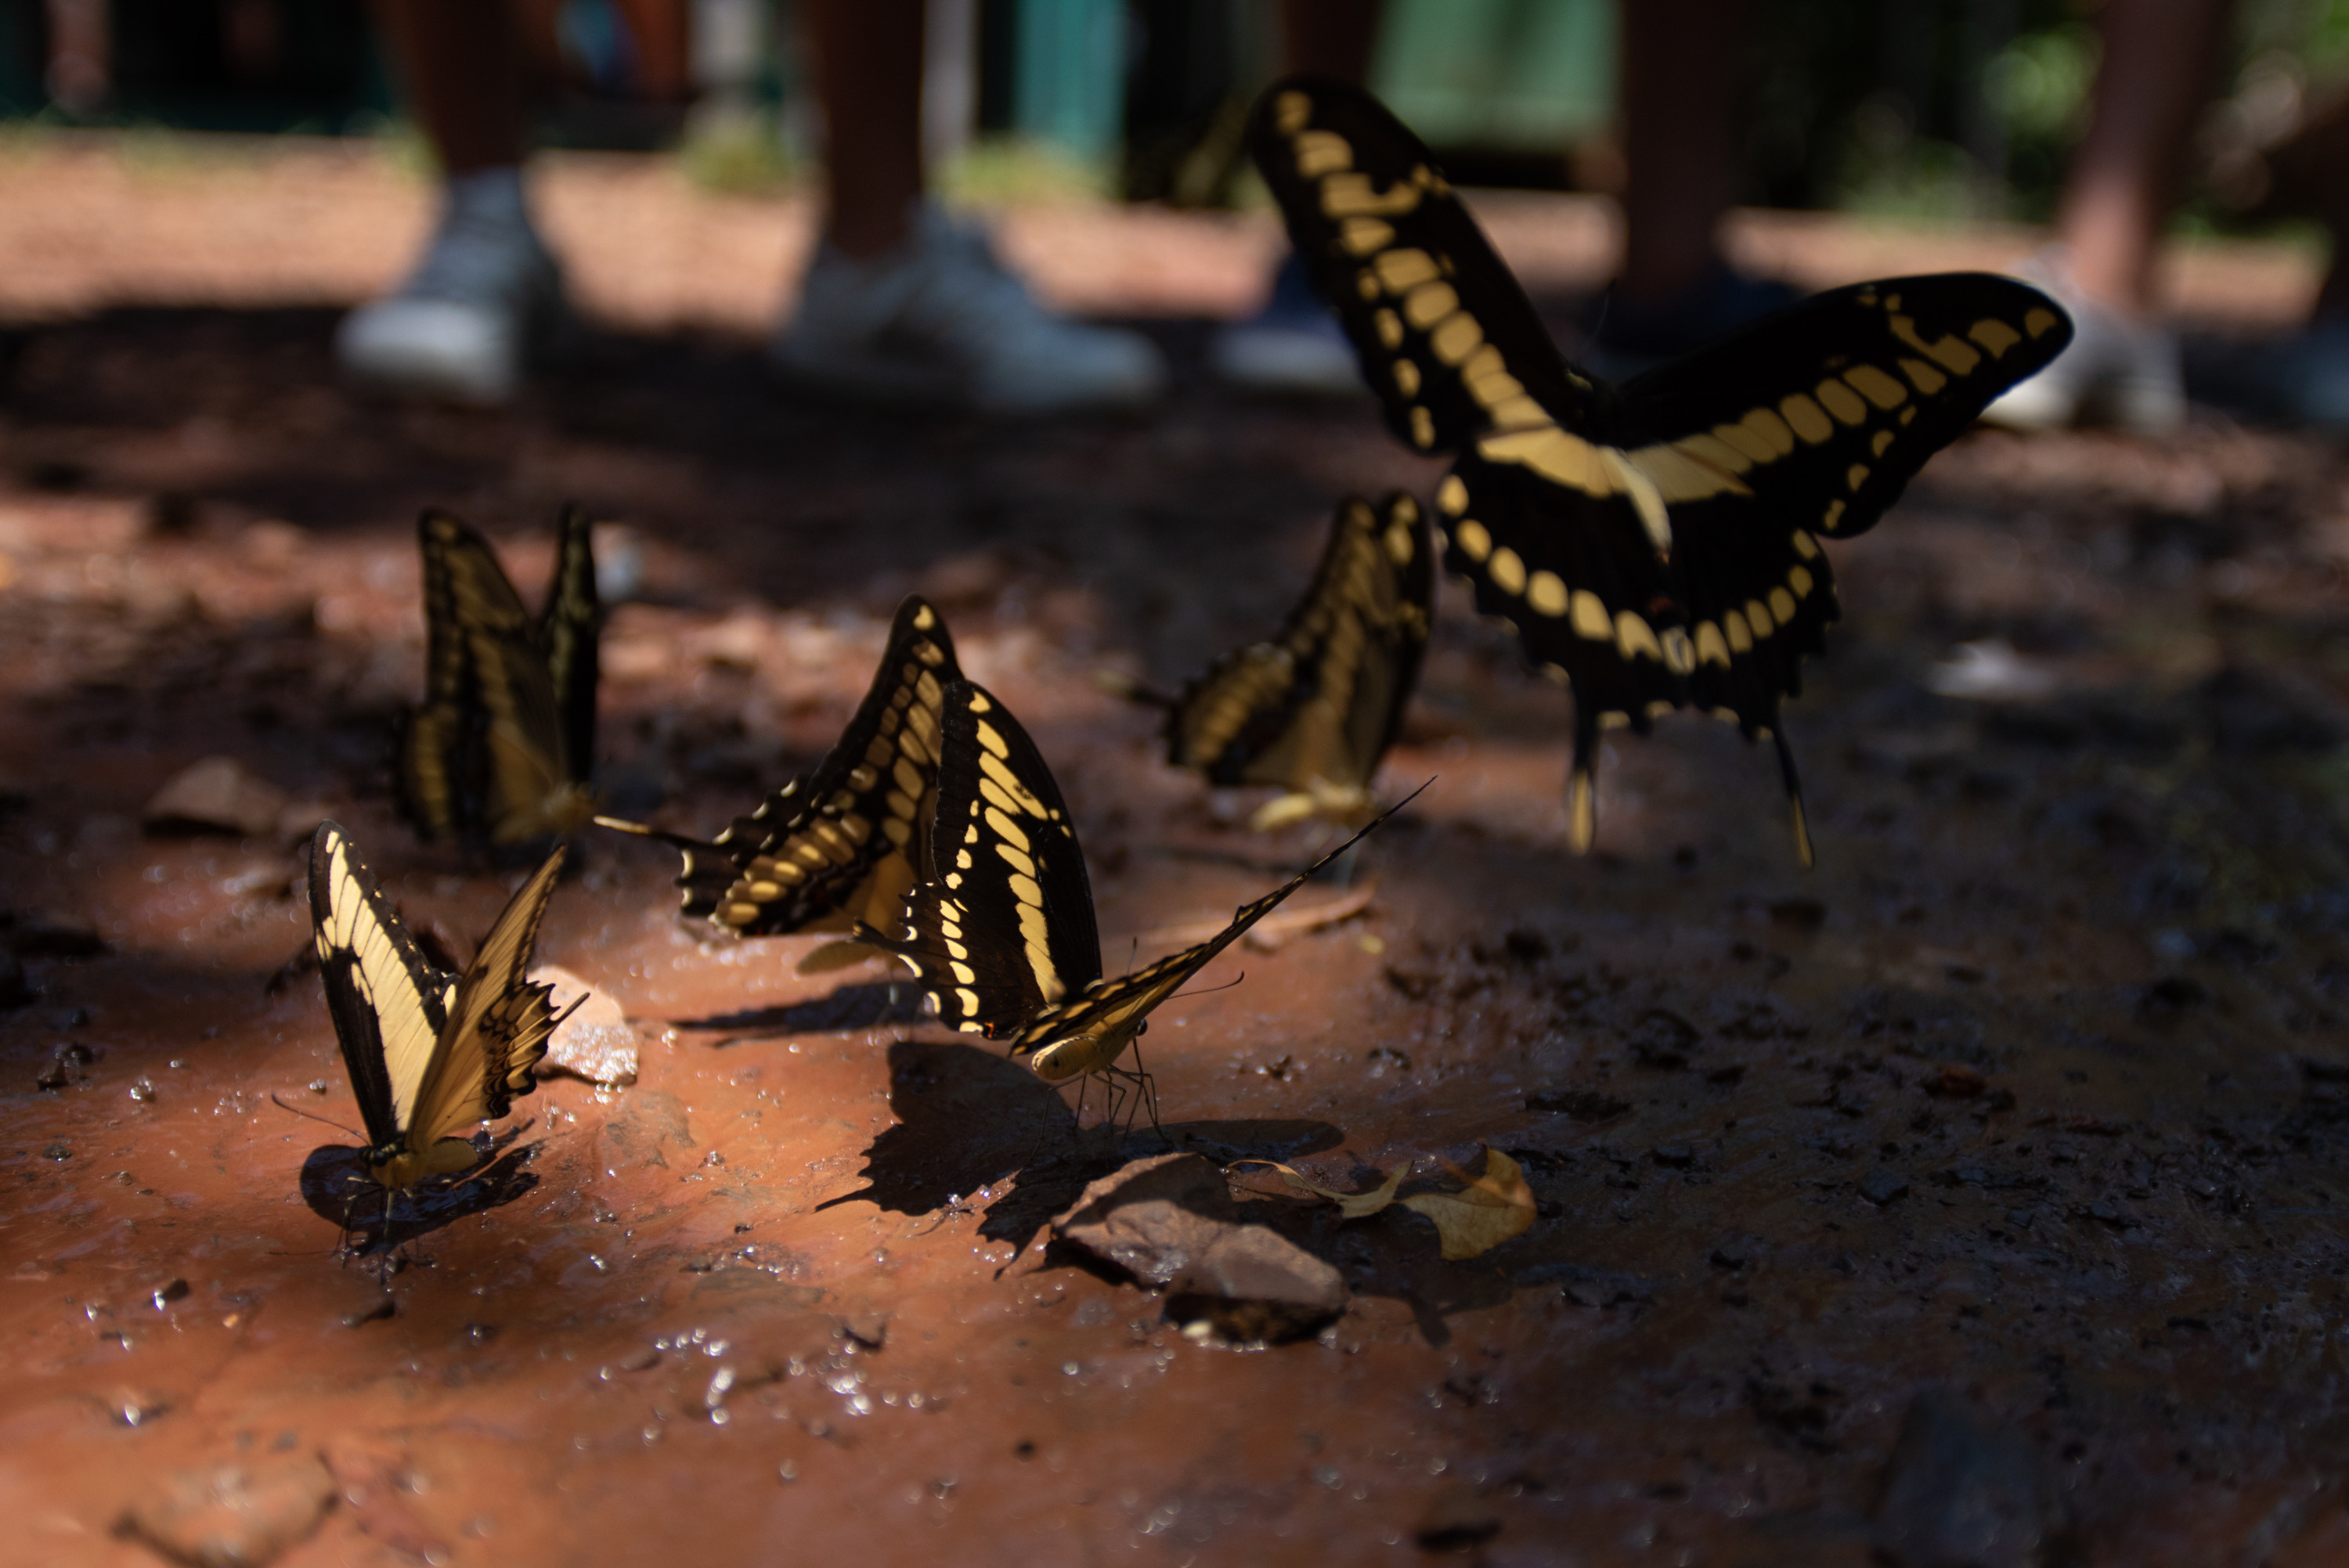 Butterflies fly in the shadows of a tree in Iguazú National Park.